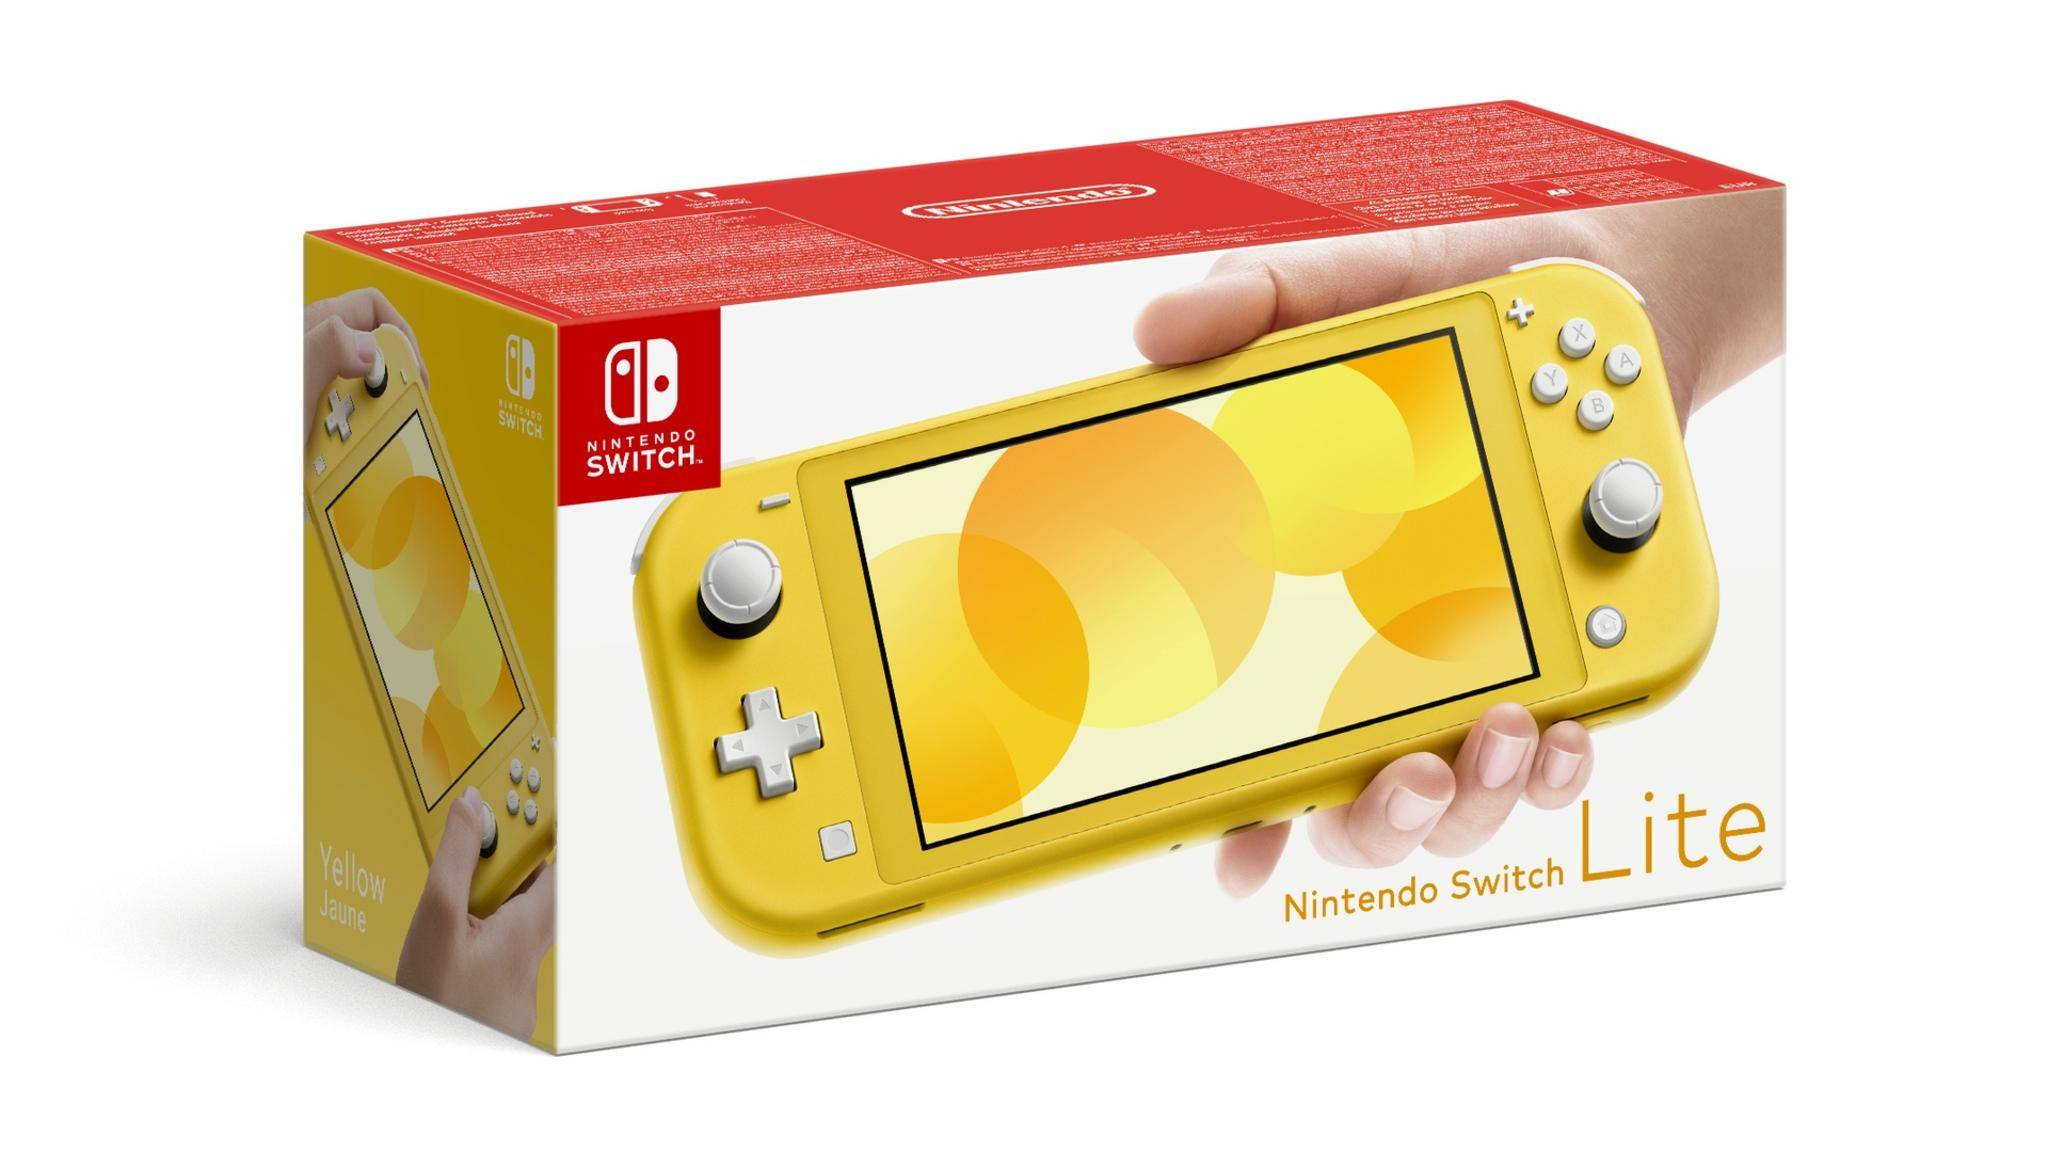 nintendo-switch-lite-gelb-packshot